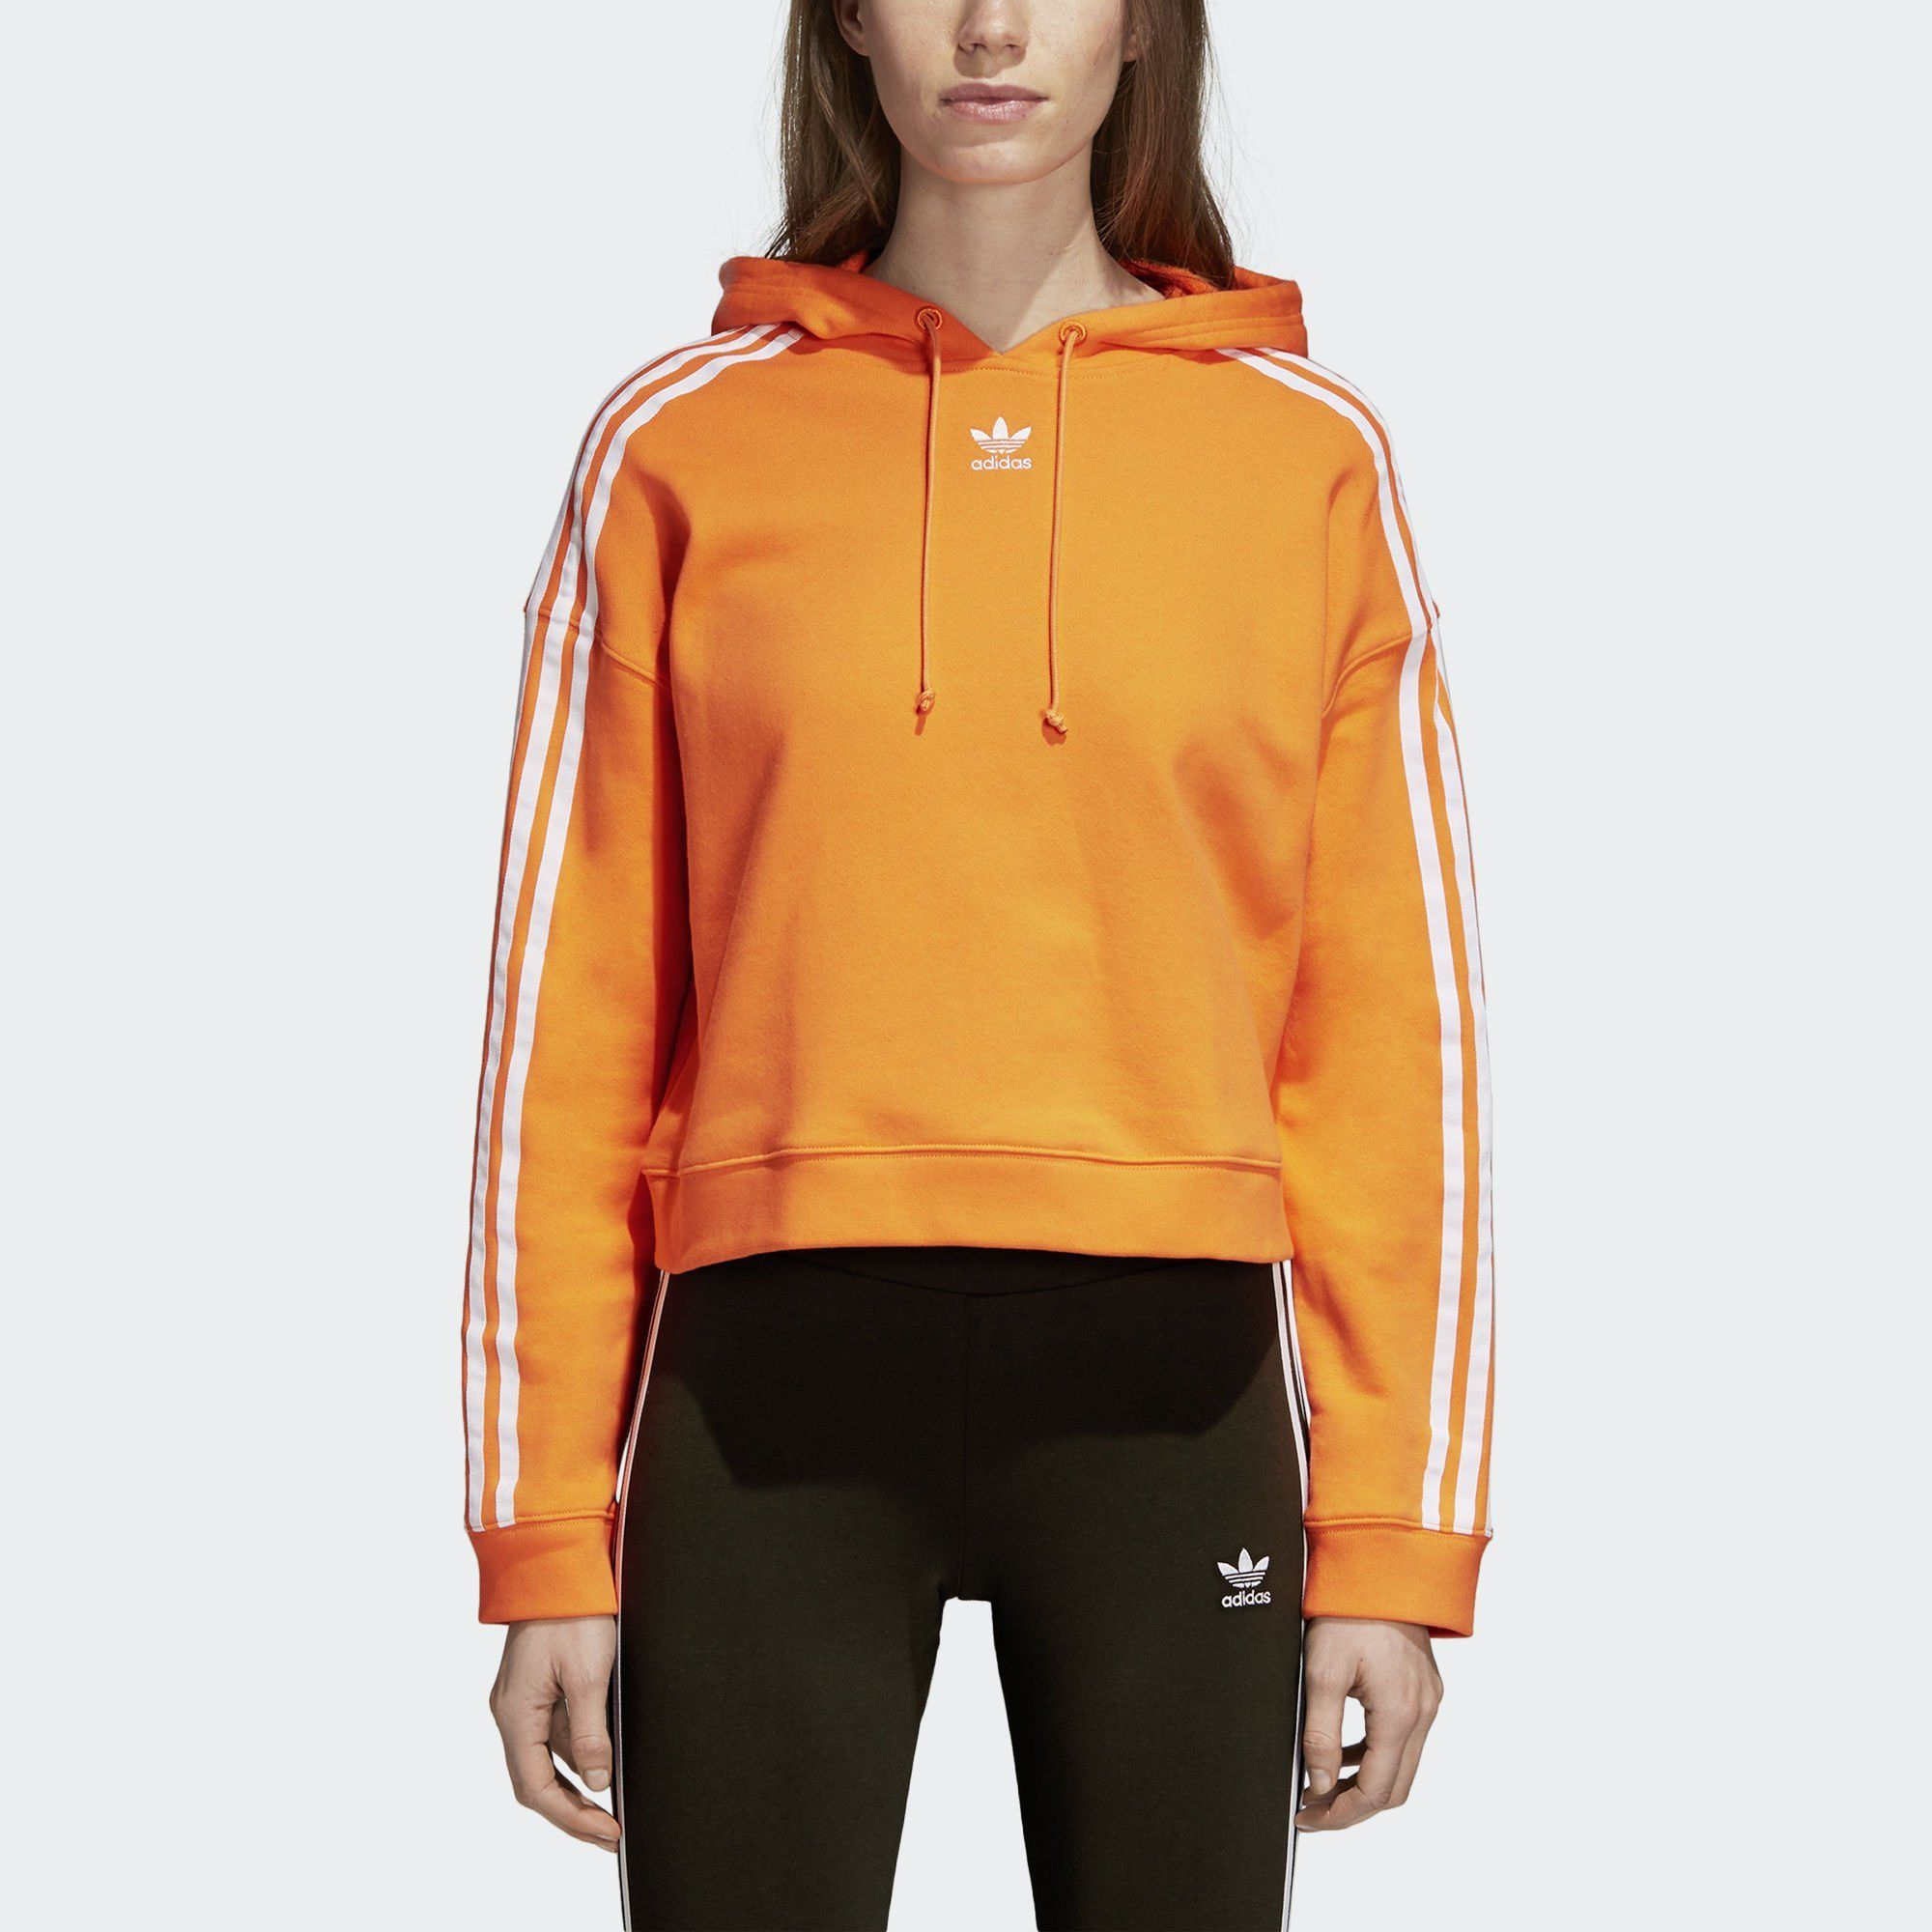 new arrival 830a0 c7802 OTTO #ADIDAS #Bekleidung #Hoodies #Pullover #Damen #adidas ...